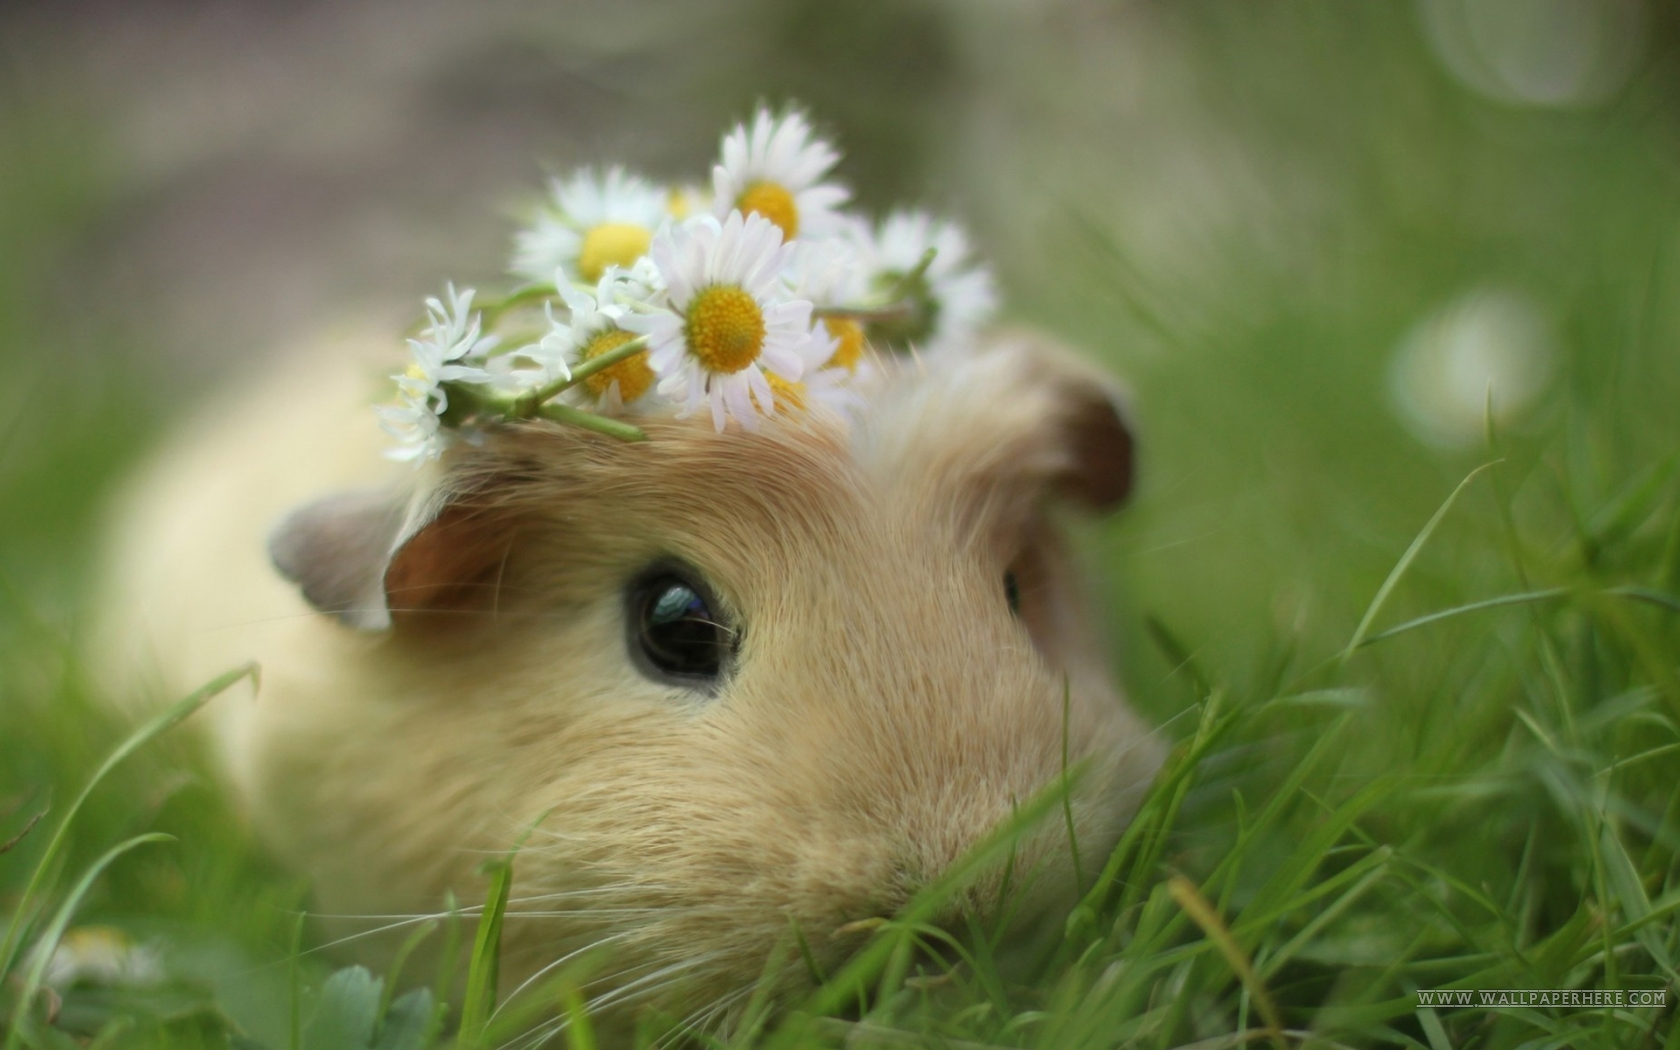 Cute Animal - Cavy Wallpaper. More Free PC Wallpaper for Your Desktop Backgrounds